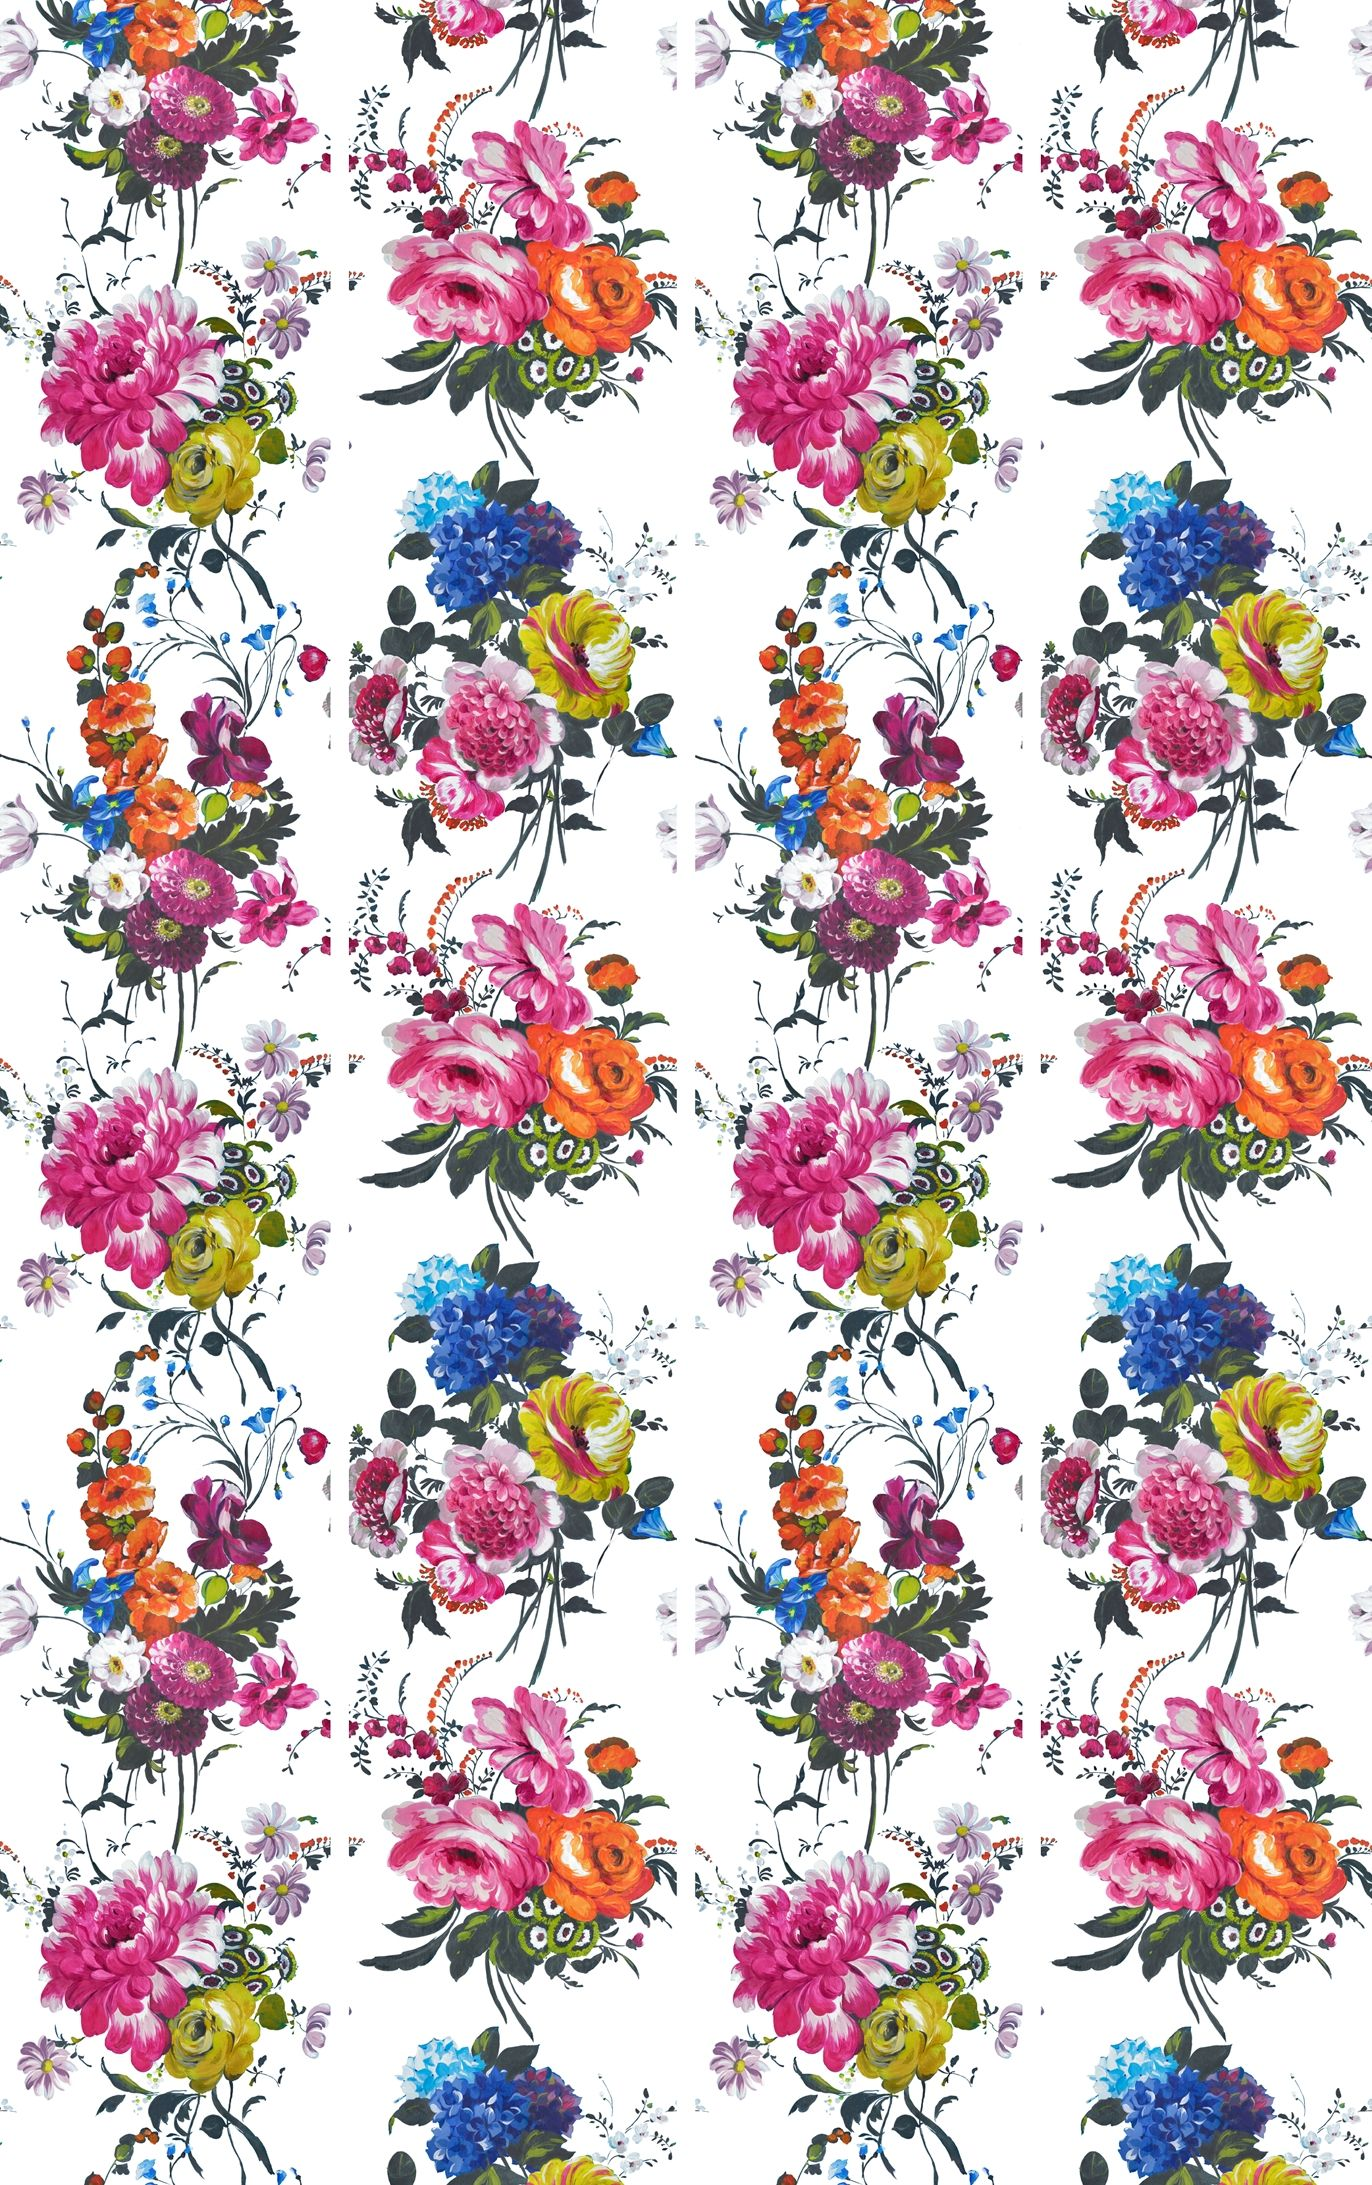 Florals Galore » Floral peony fabric from Amrapali Peony